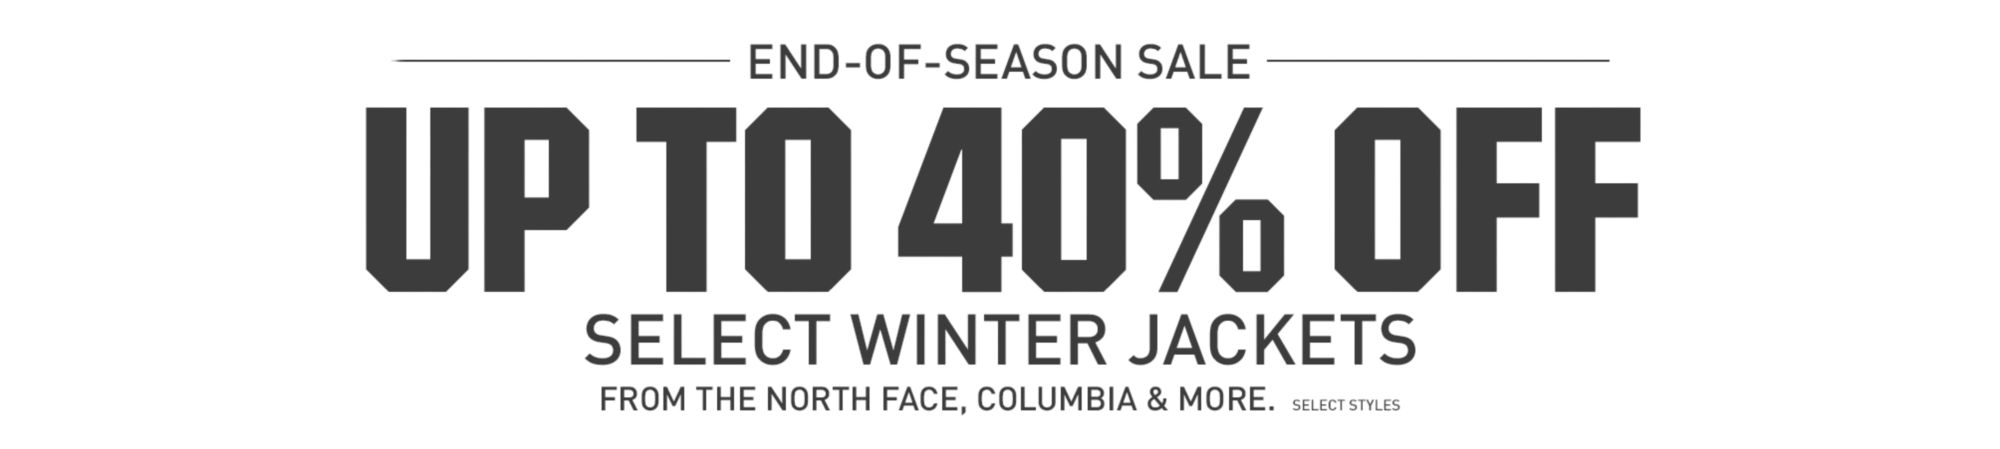 Up to 40% off Select Winter Jackets - Shop Now